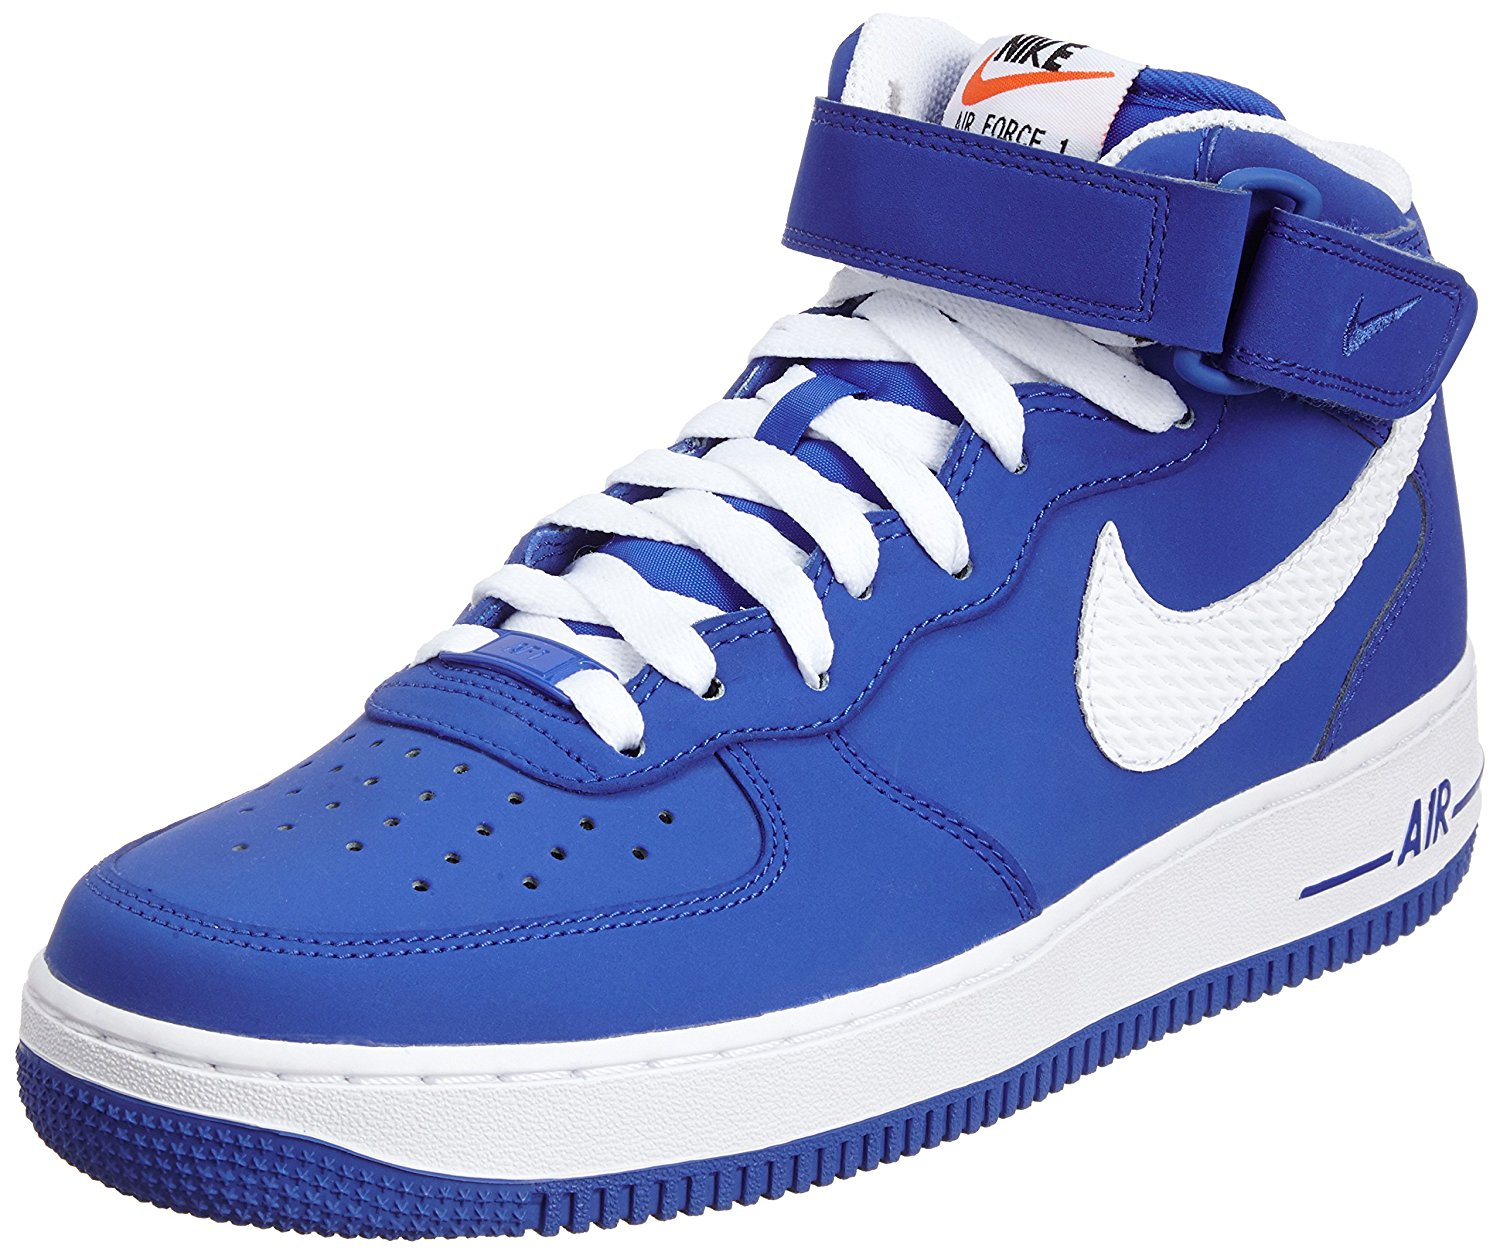 air force 1 405